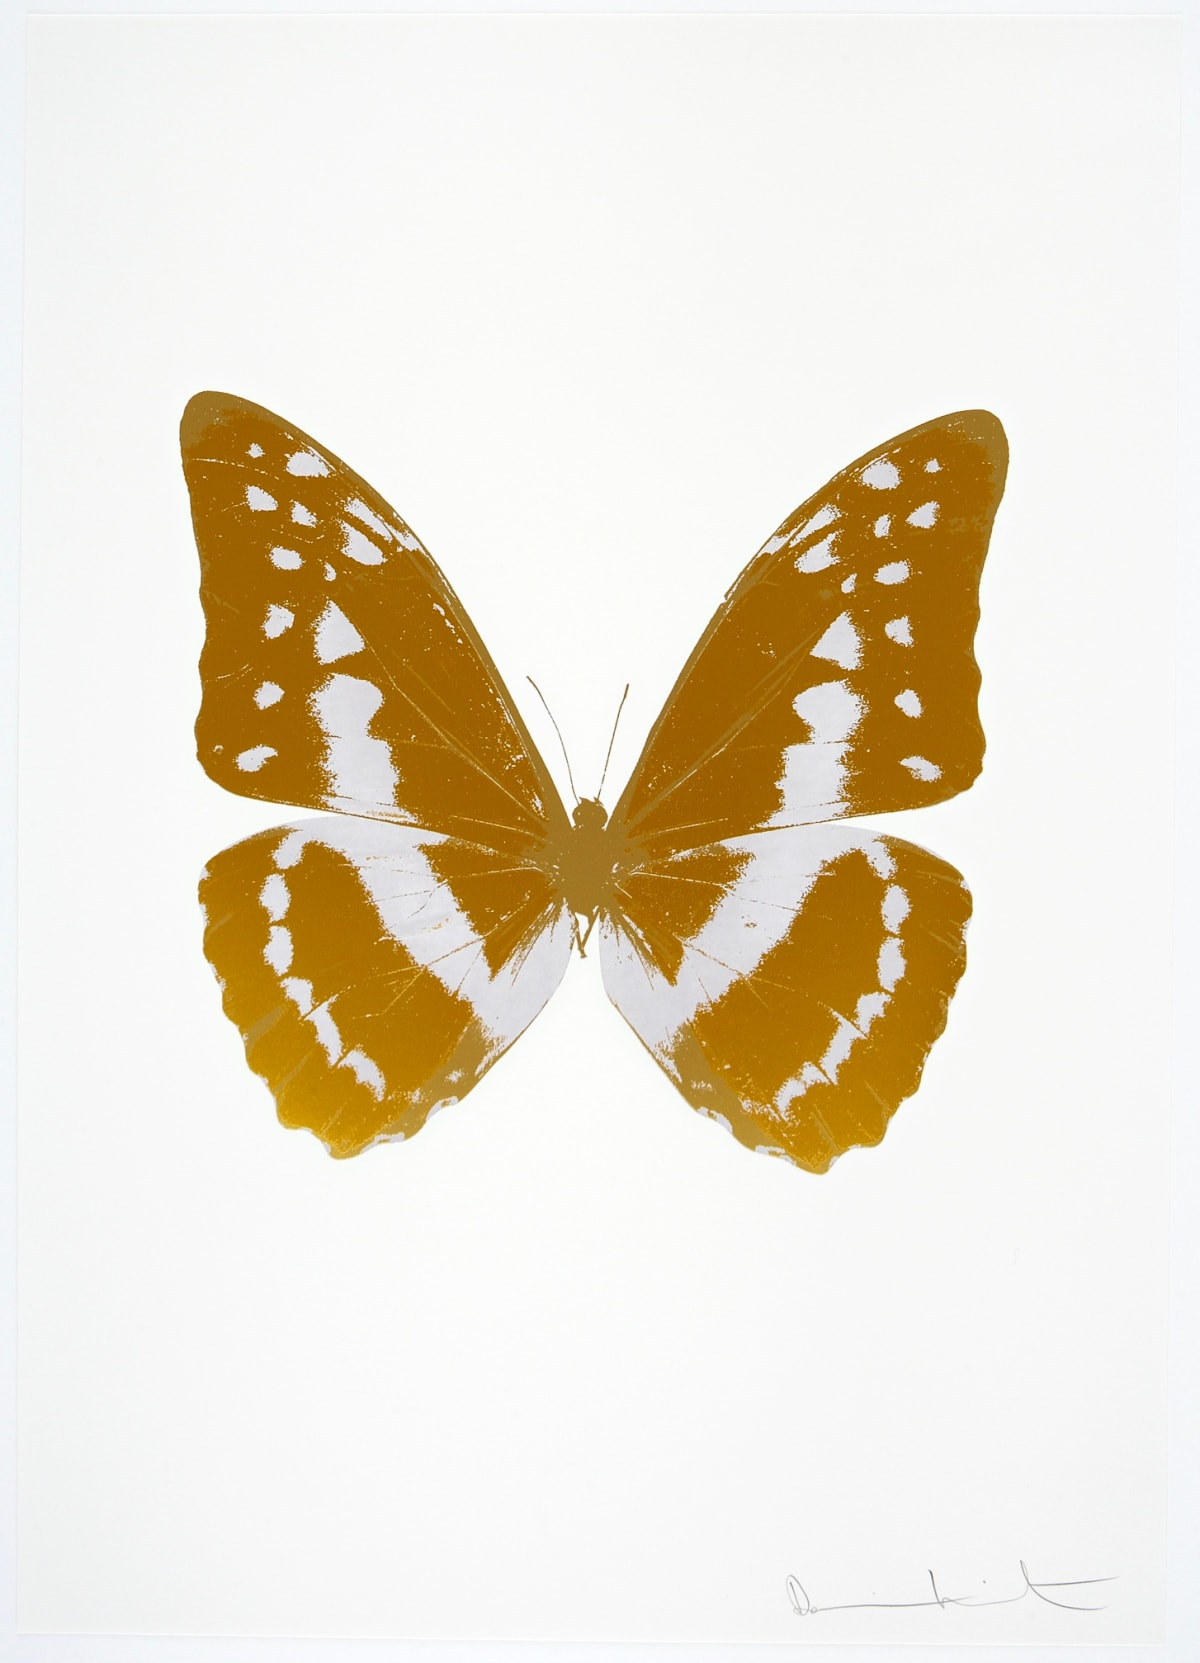 Damien Hirst The Souls III - Paradise Copper/Cotton White/ Luxury Gold, 2010 3 colour foil block on 300gsm Arches 88 archival paper. Signed and numbered. Published by Paul Stolper and Other Criteria 72 x 51cm Edition of 15